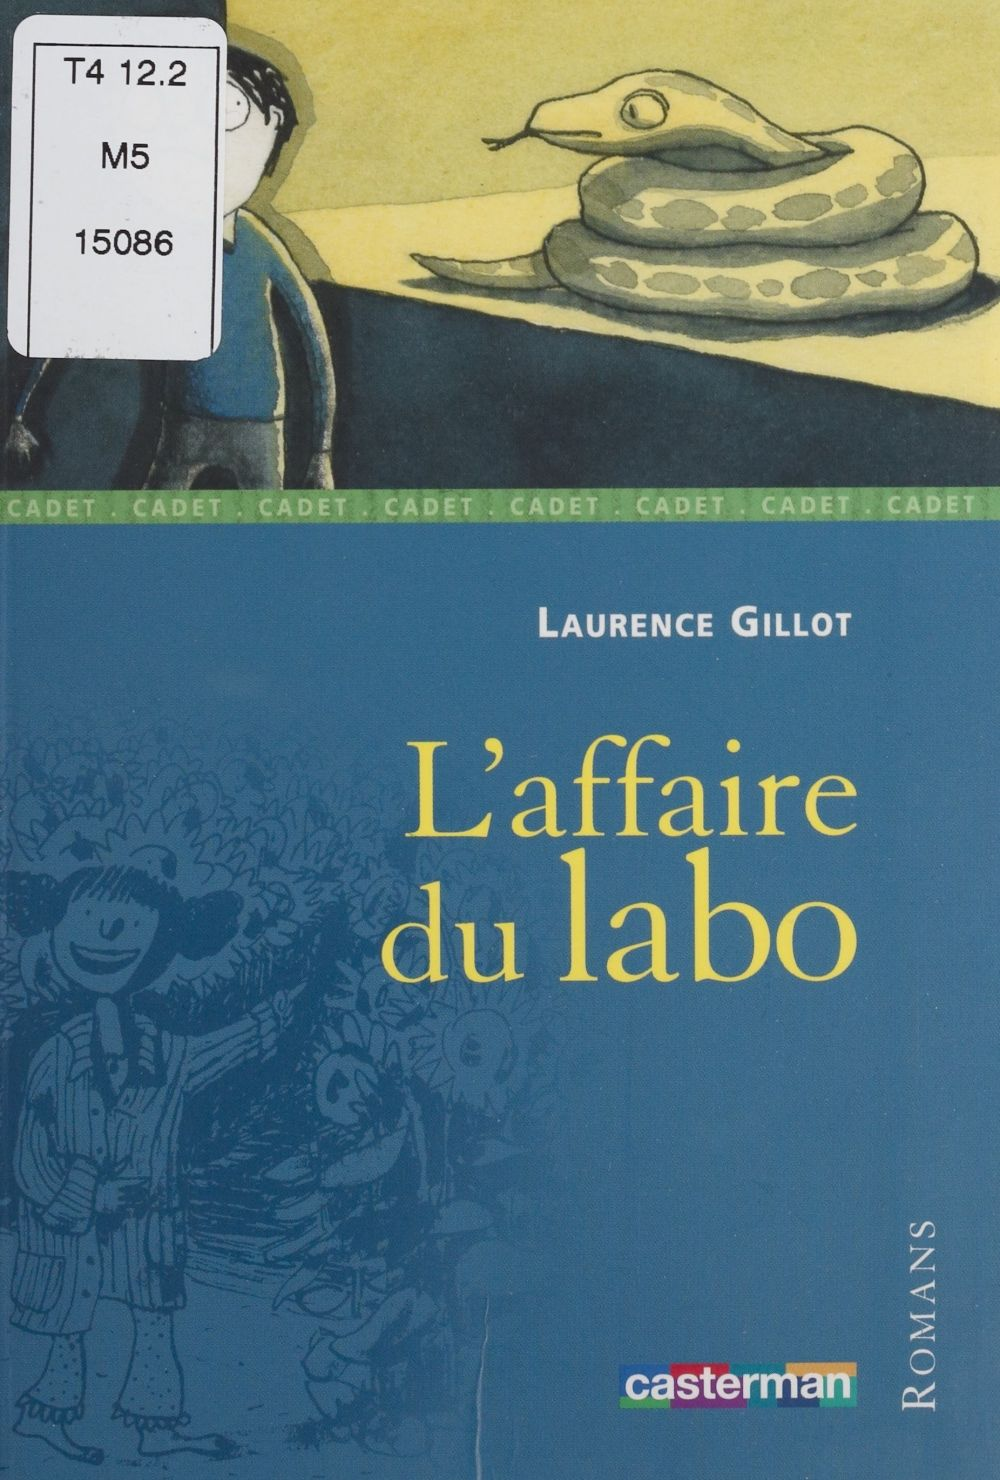 L'Affaire du labo